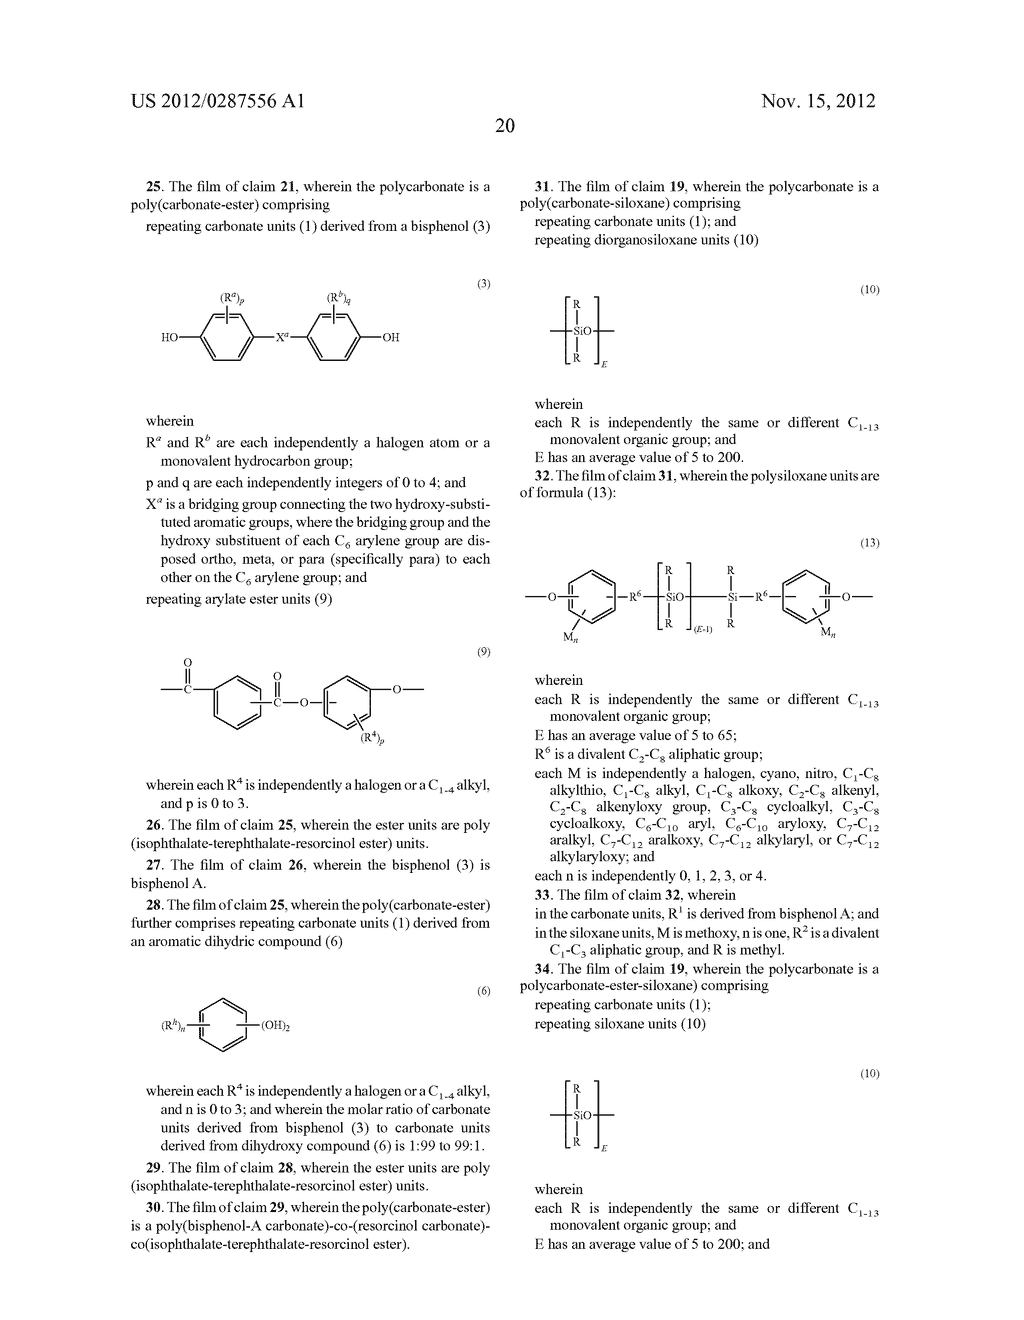 AMORPHOUS POLYCARBONATE FILMS FOR CAPACITORS, METHODS OF MANUFACTURE, AND     ARTICLES MANUFACTURED THEREFROM - diagram, schematic, and image 21